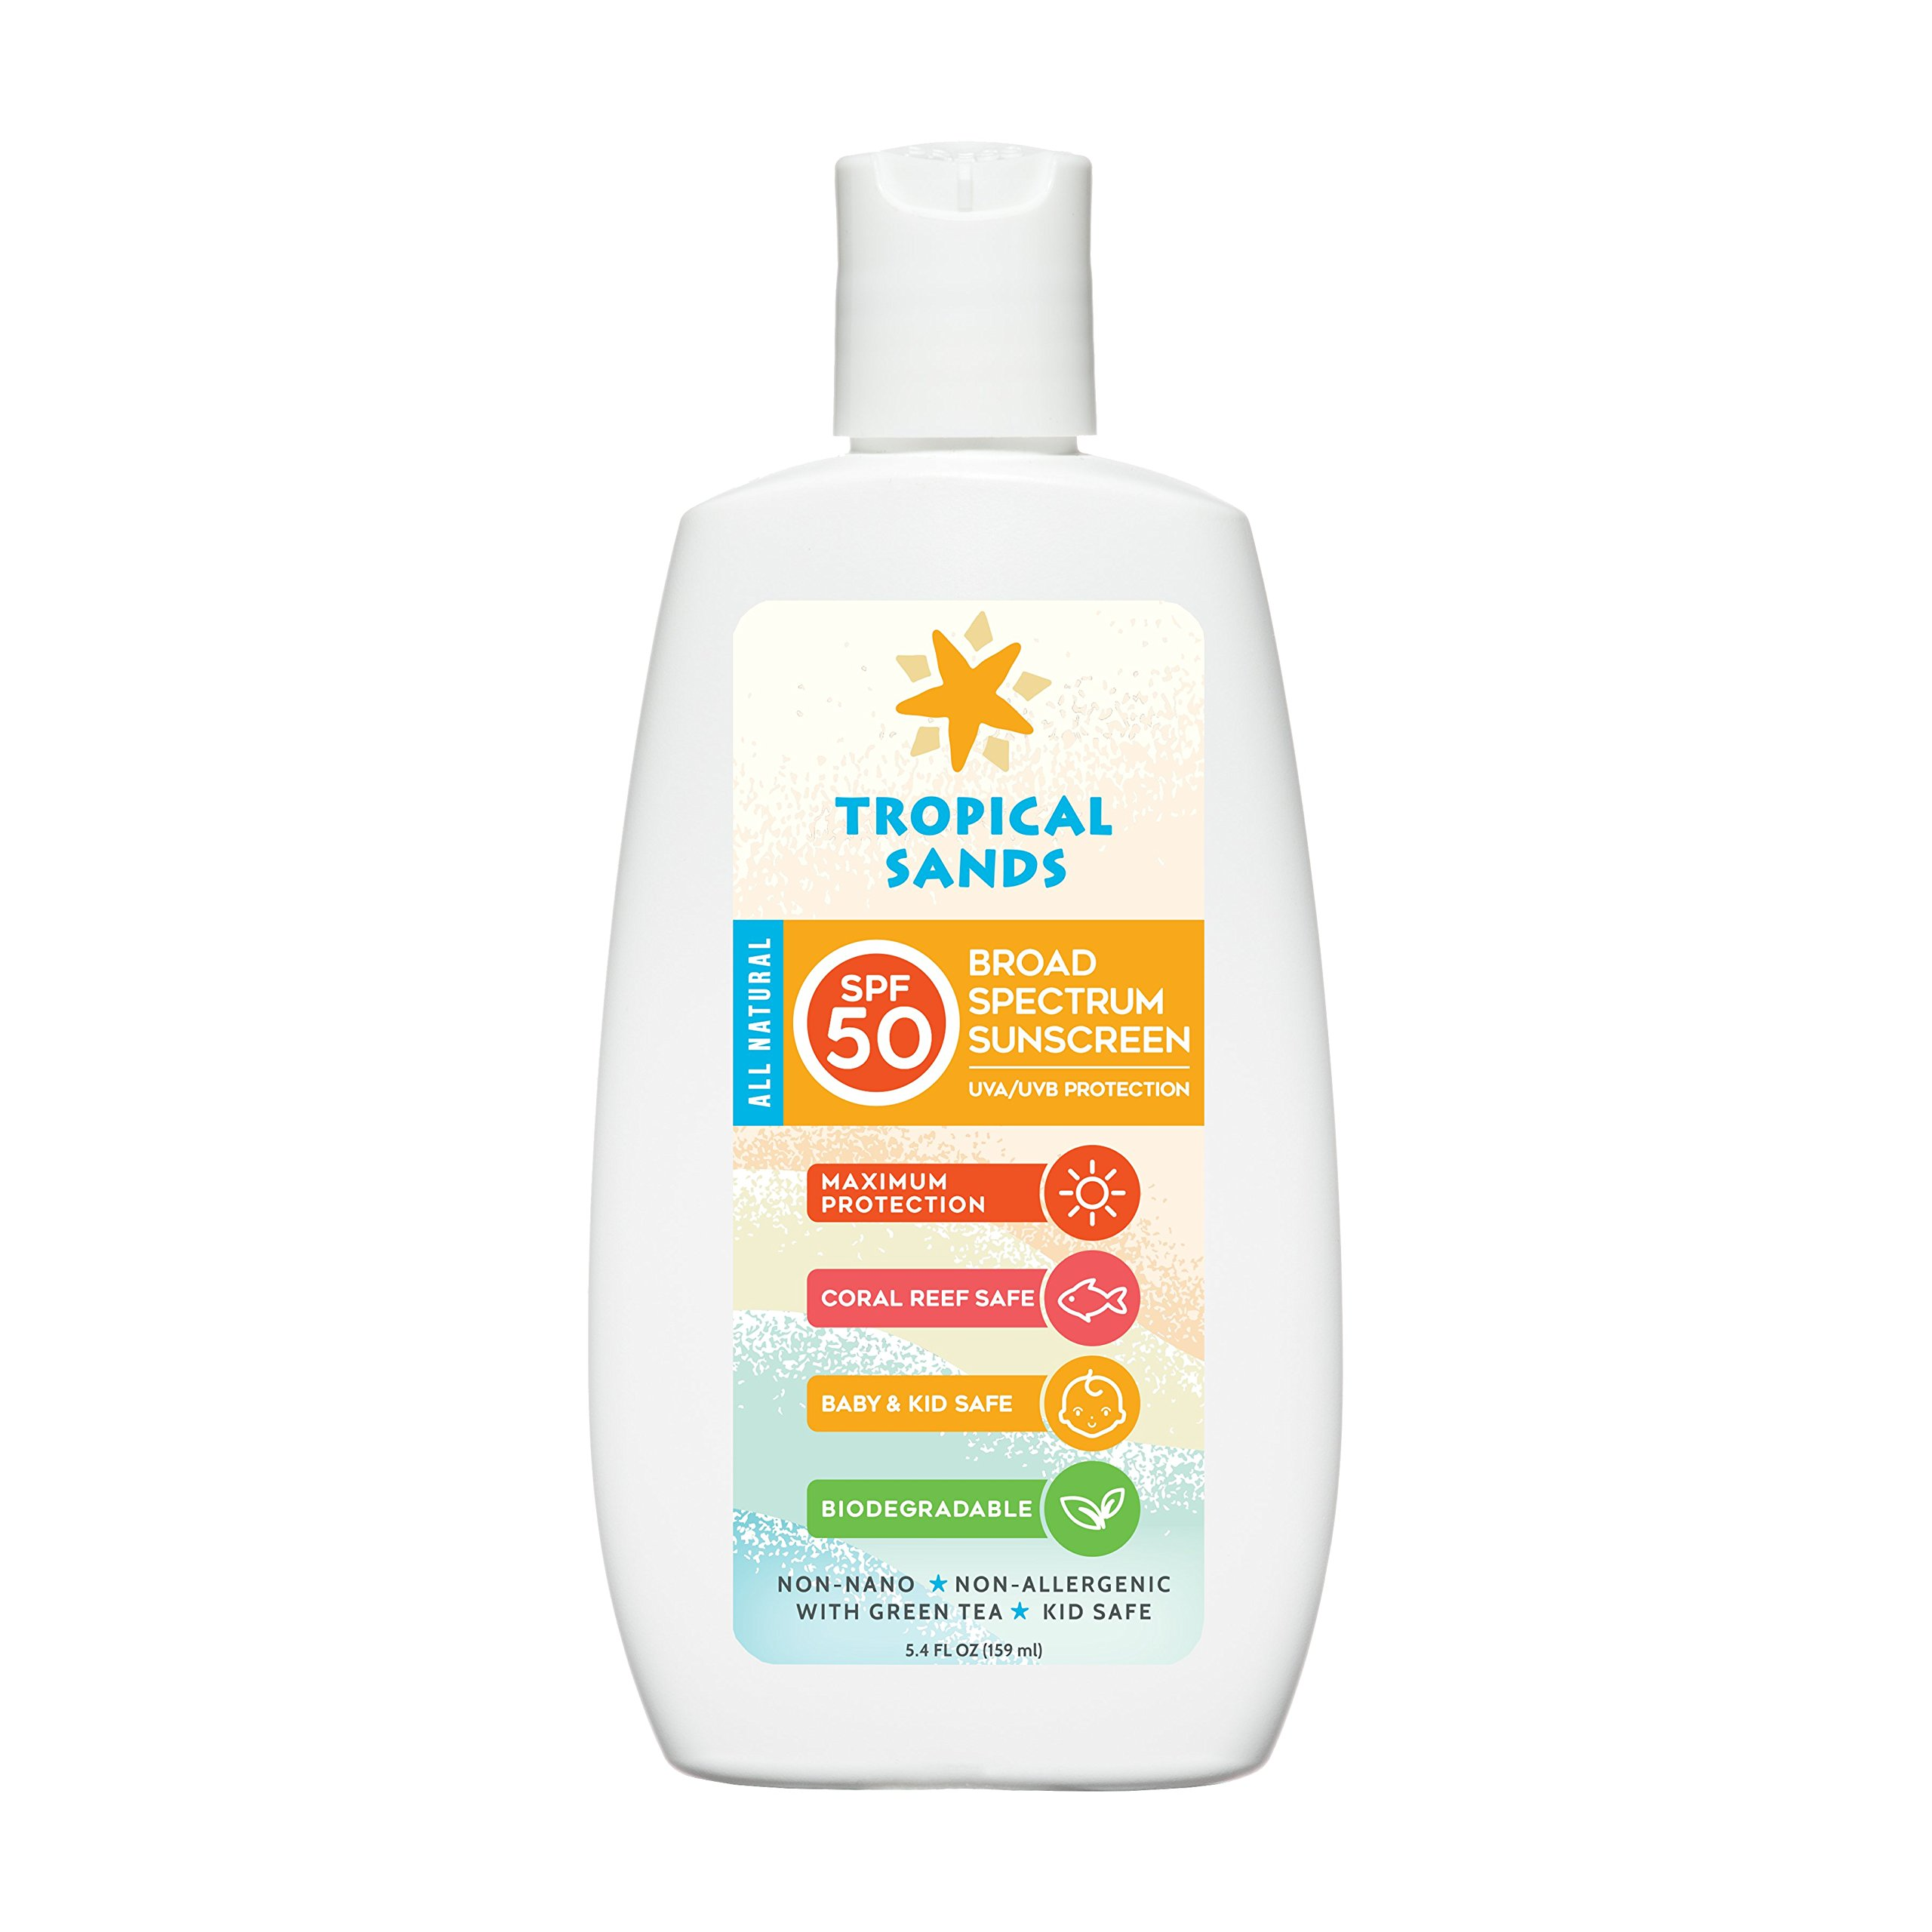 All Natural SPF 50 Biodegradable Visible Mineral Sunscreen by Tropical Sands, Reef Safe, 5.4 Fl Ounces